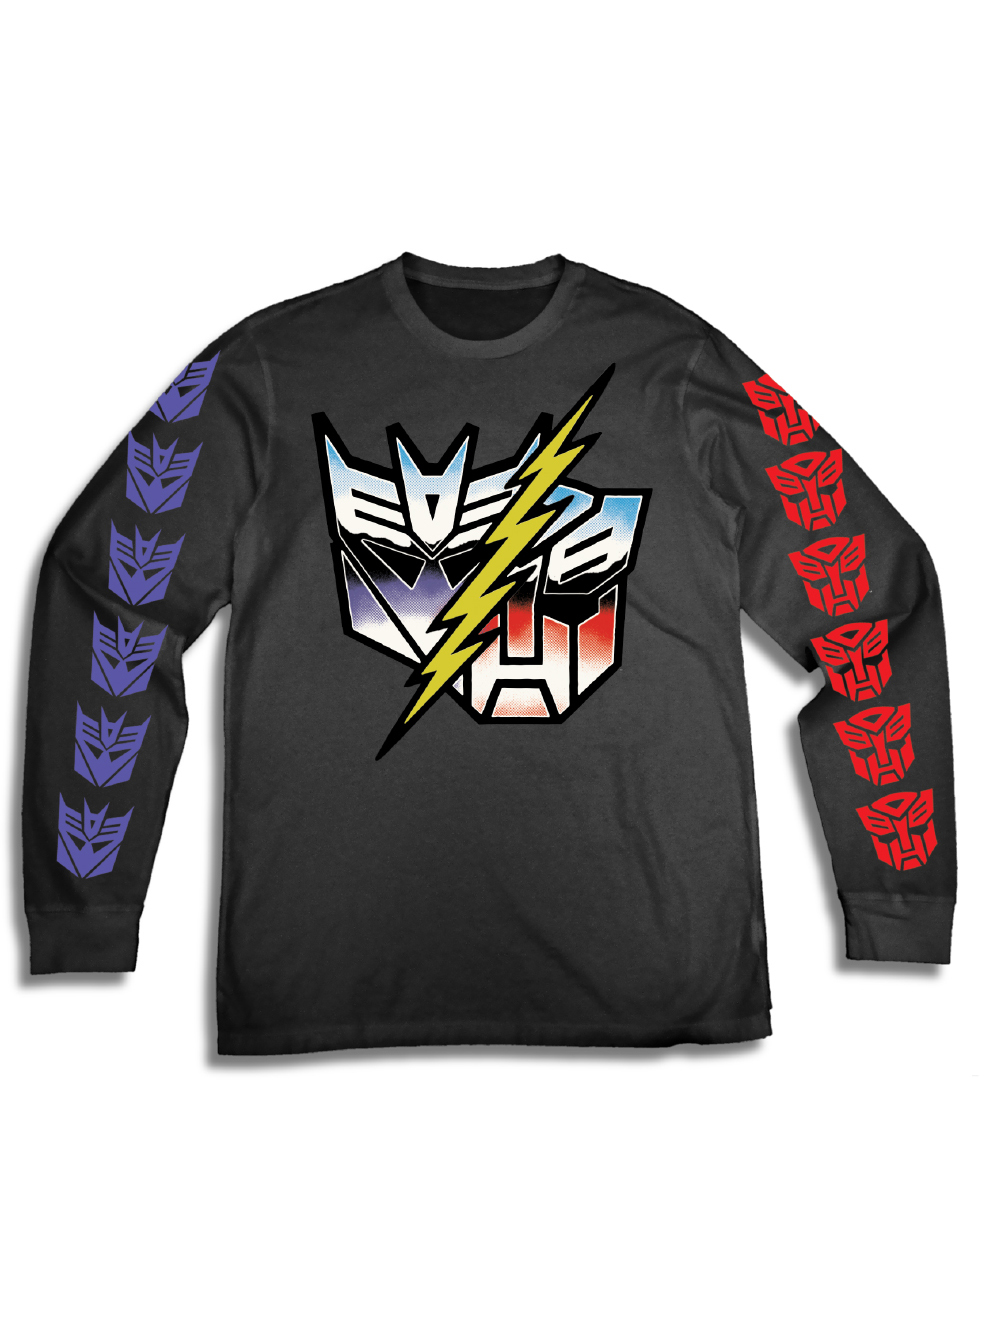 Transformers Men's Hasbro Autobots VS. Decepticons 90's Long Sleeve Graphic Tee with Sleeve Prints